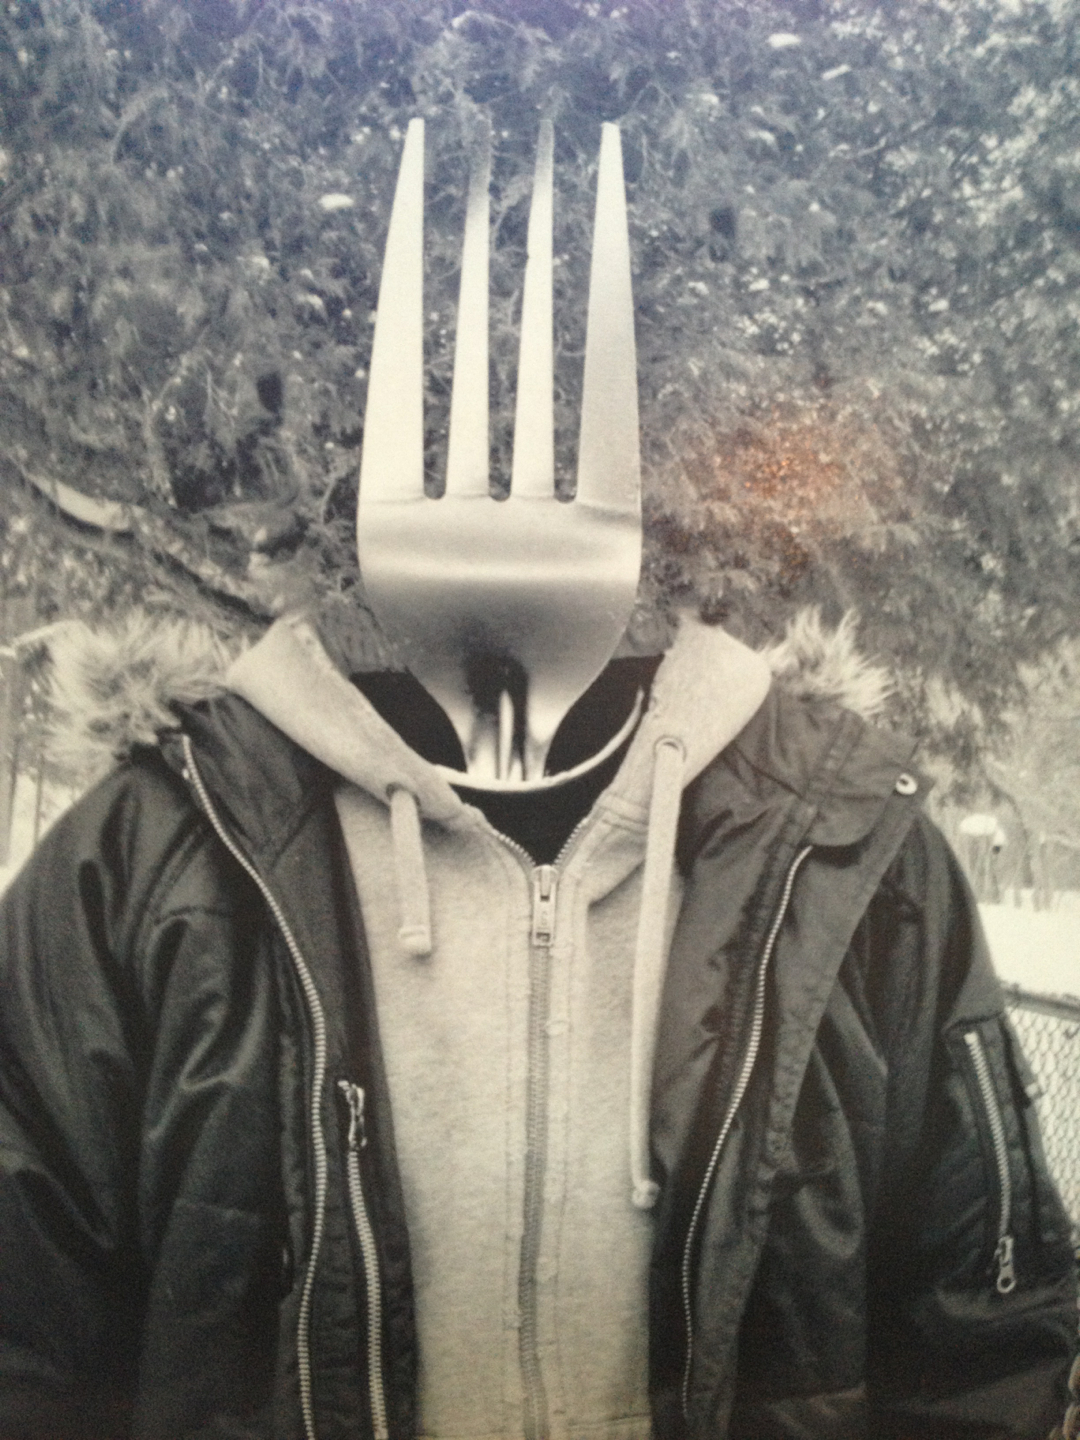 """From the Archives""    One of my original surreal projects where I took portraits of my friends (this one being my ex) ad replaced their heads with utensils. I need to go back and re-edit these"